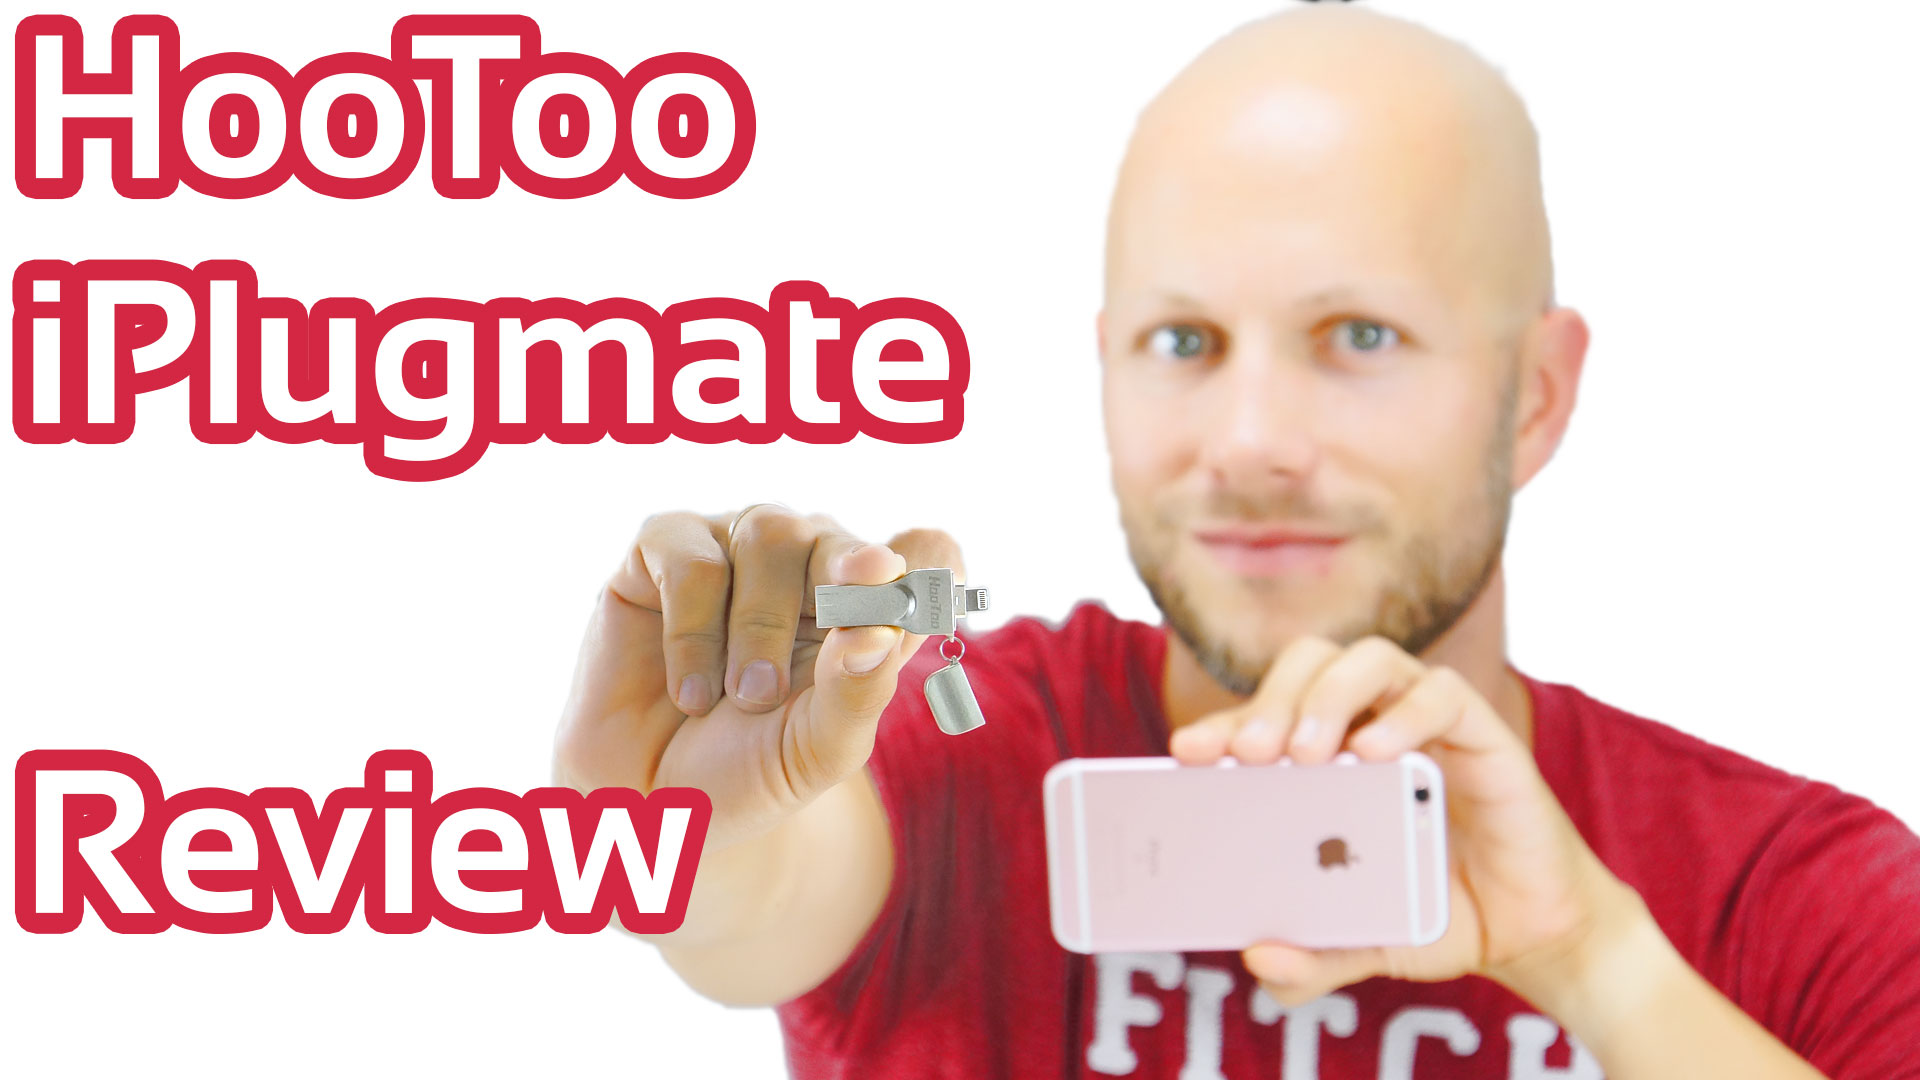 Hootoo Iplugmate Ios Usb Stick Review Idomix